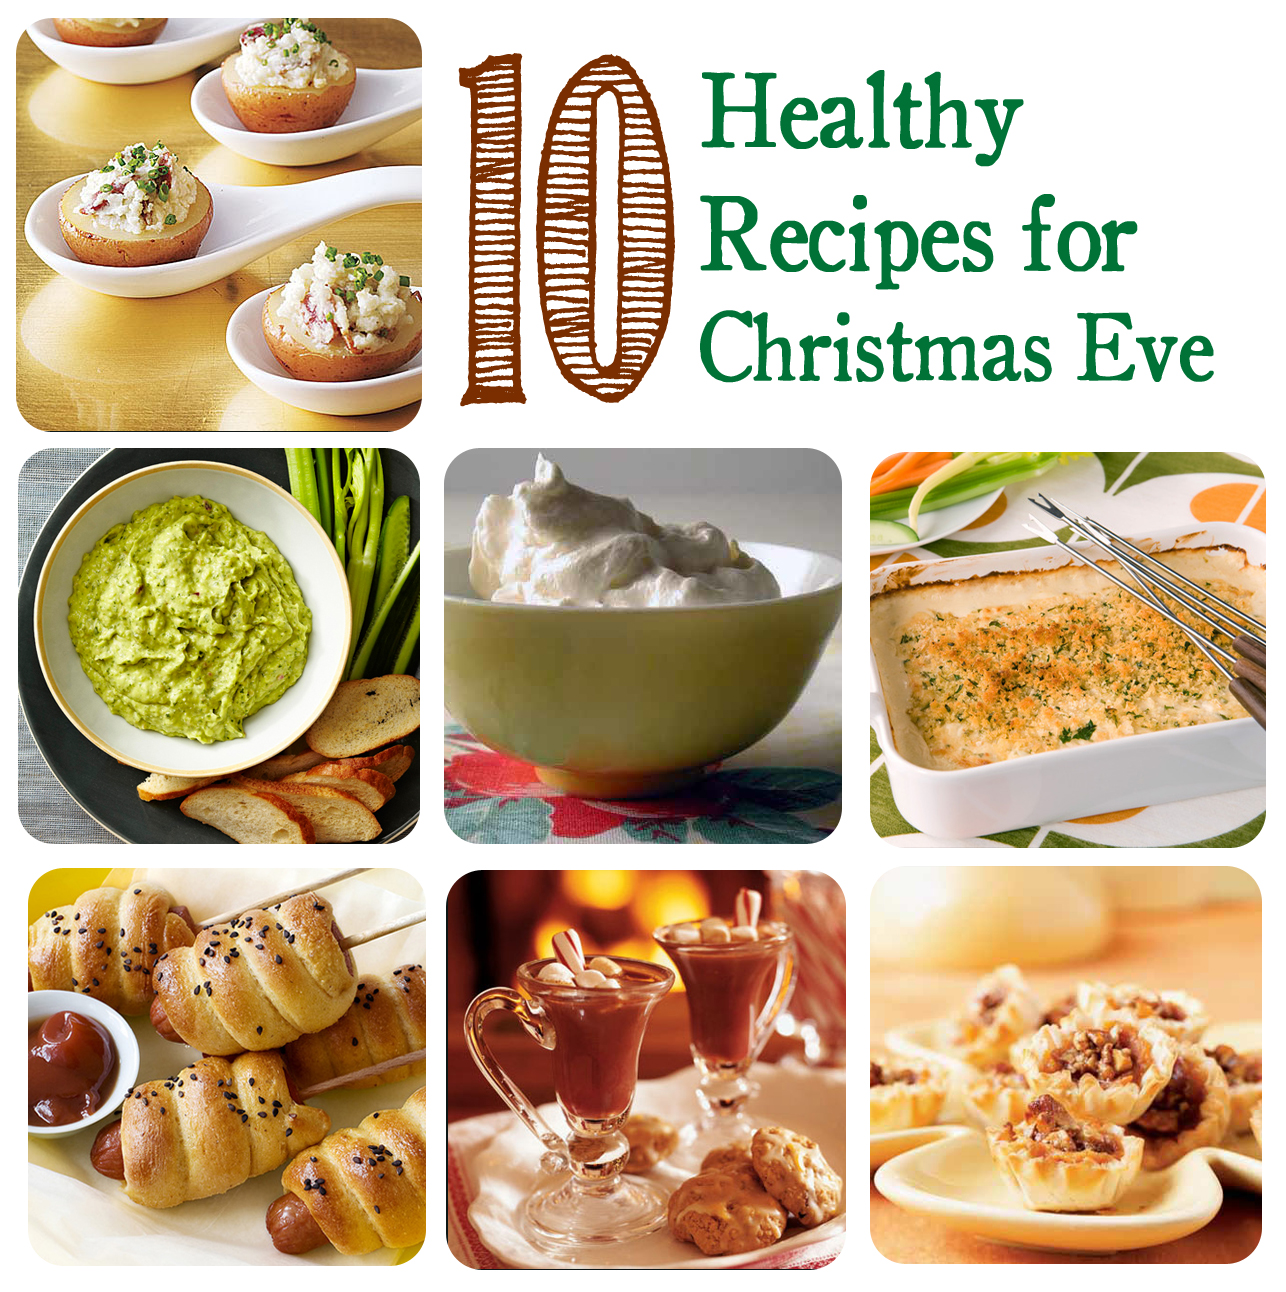 My Inspired Home: Christmas Eve: Healthy Appetizers